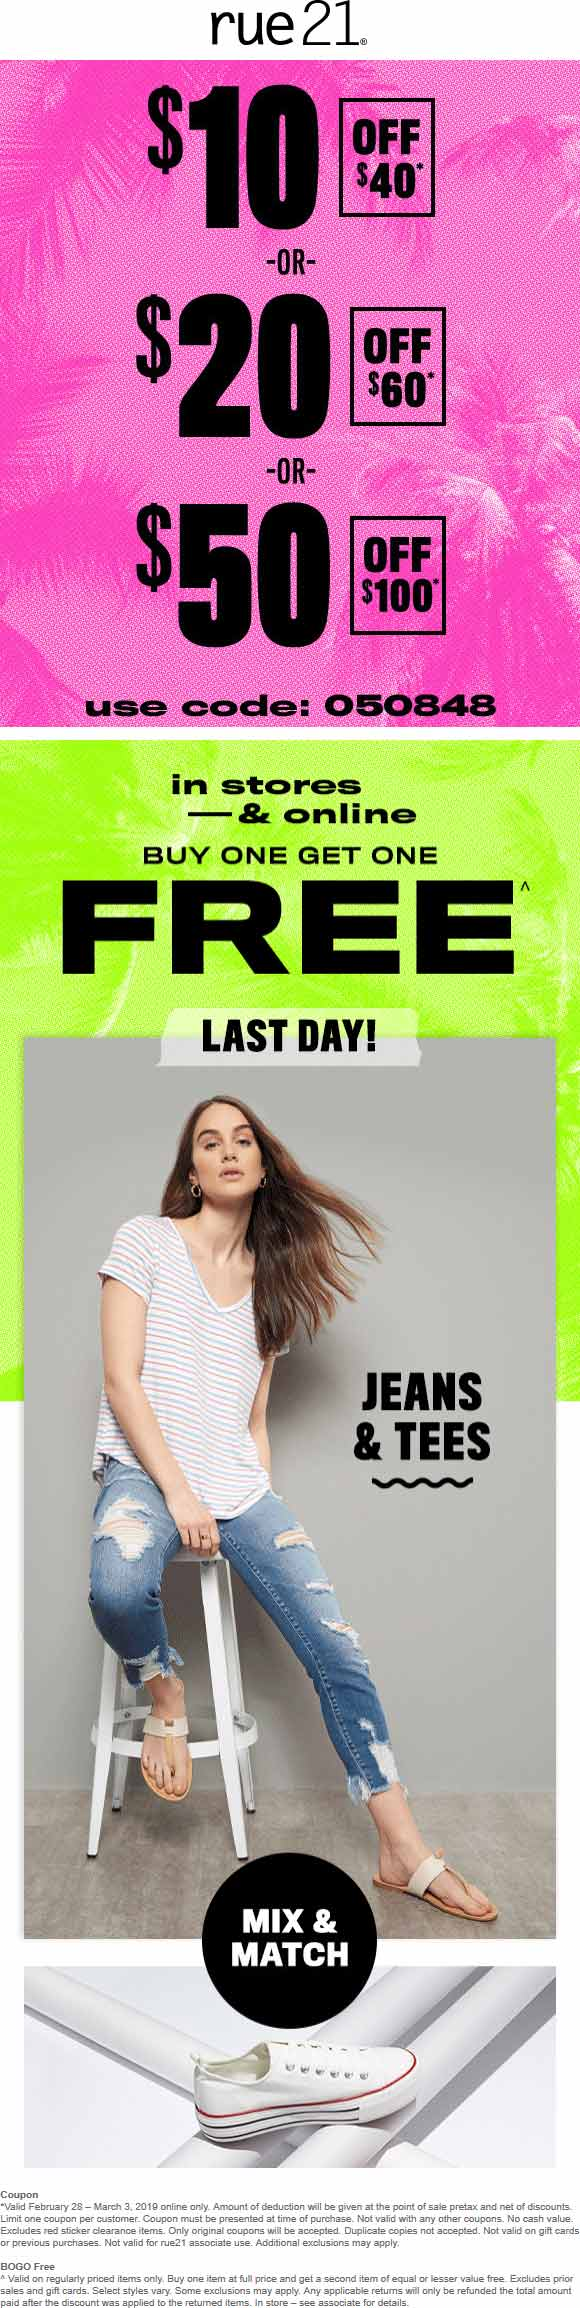 Rue21 Coupon May 2019 Second item free today at rue21, also $10-$50 off $40+ online via promo code 050848